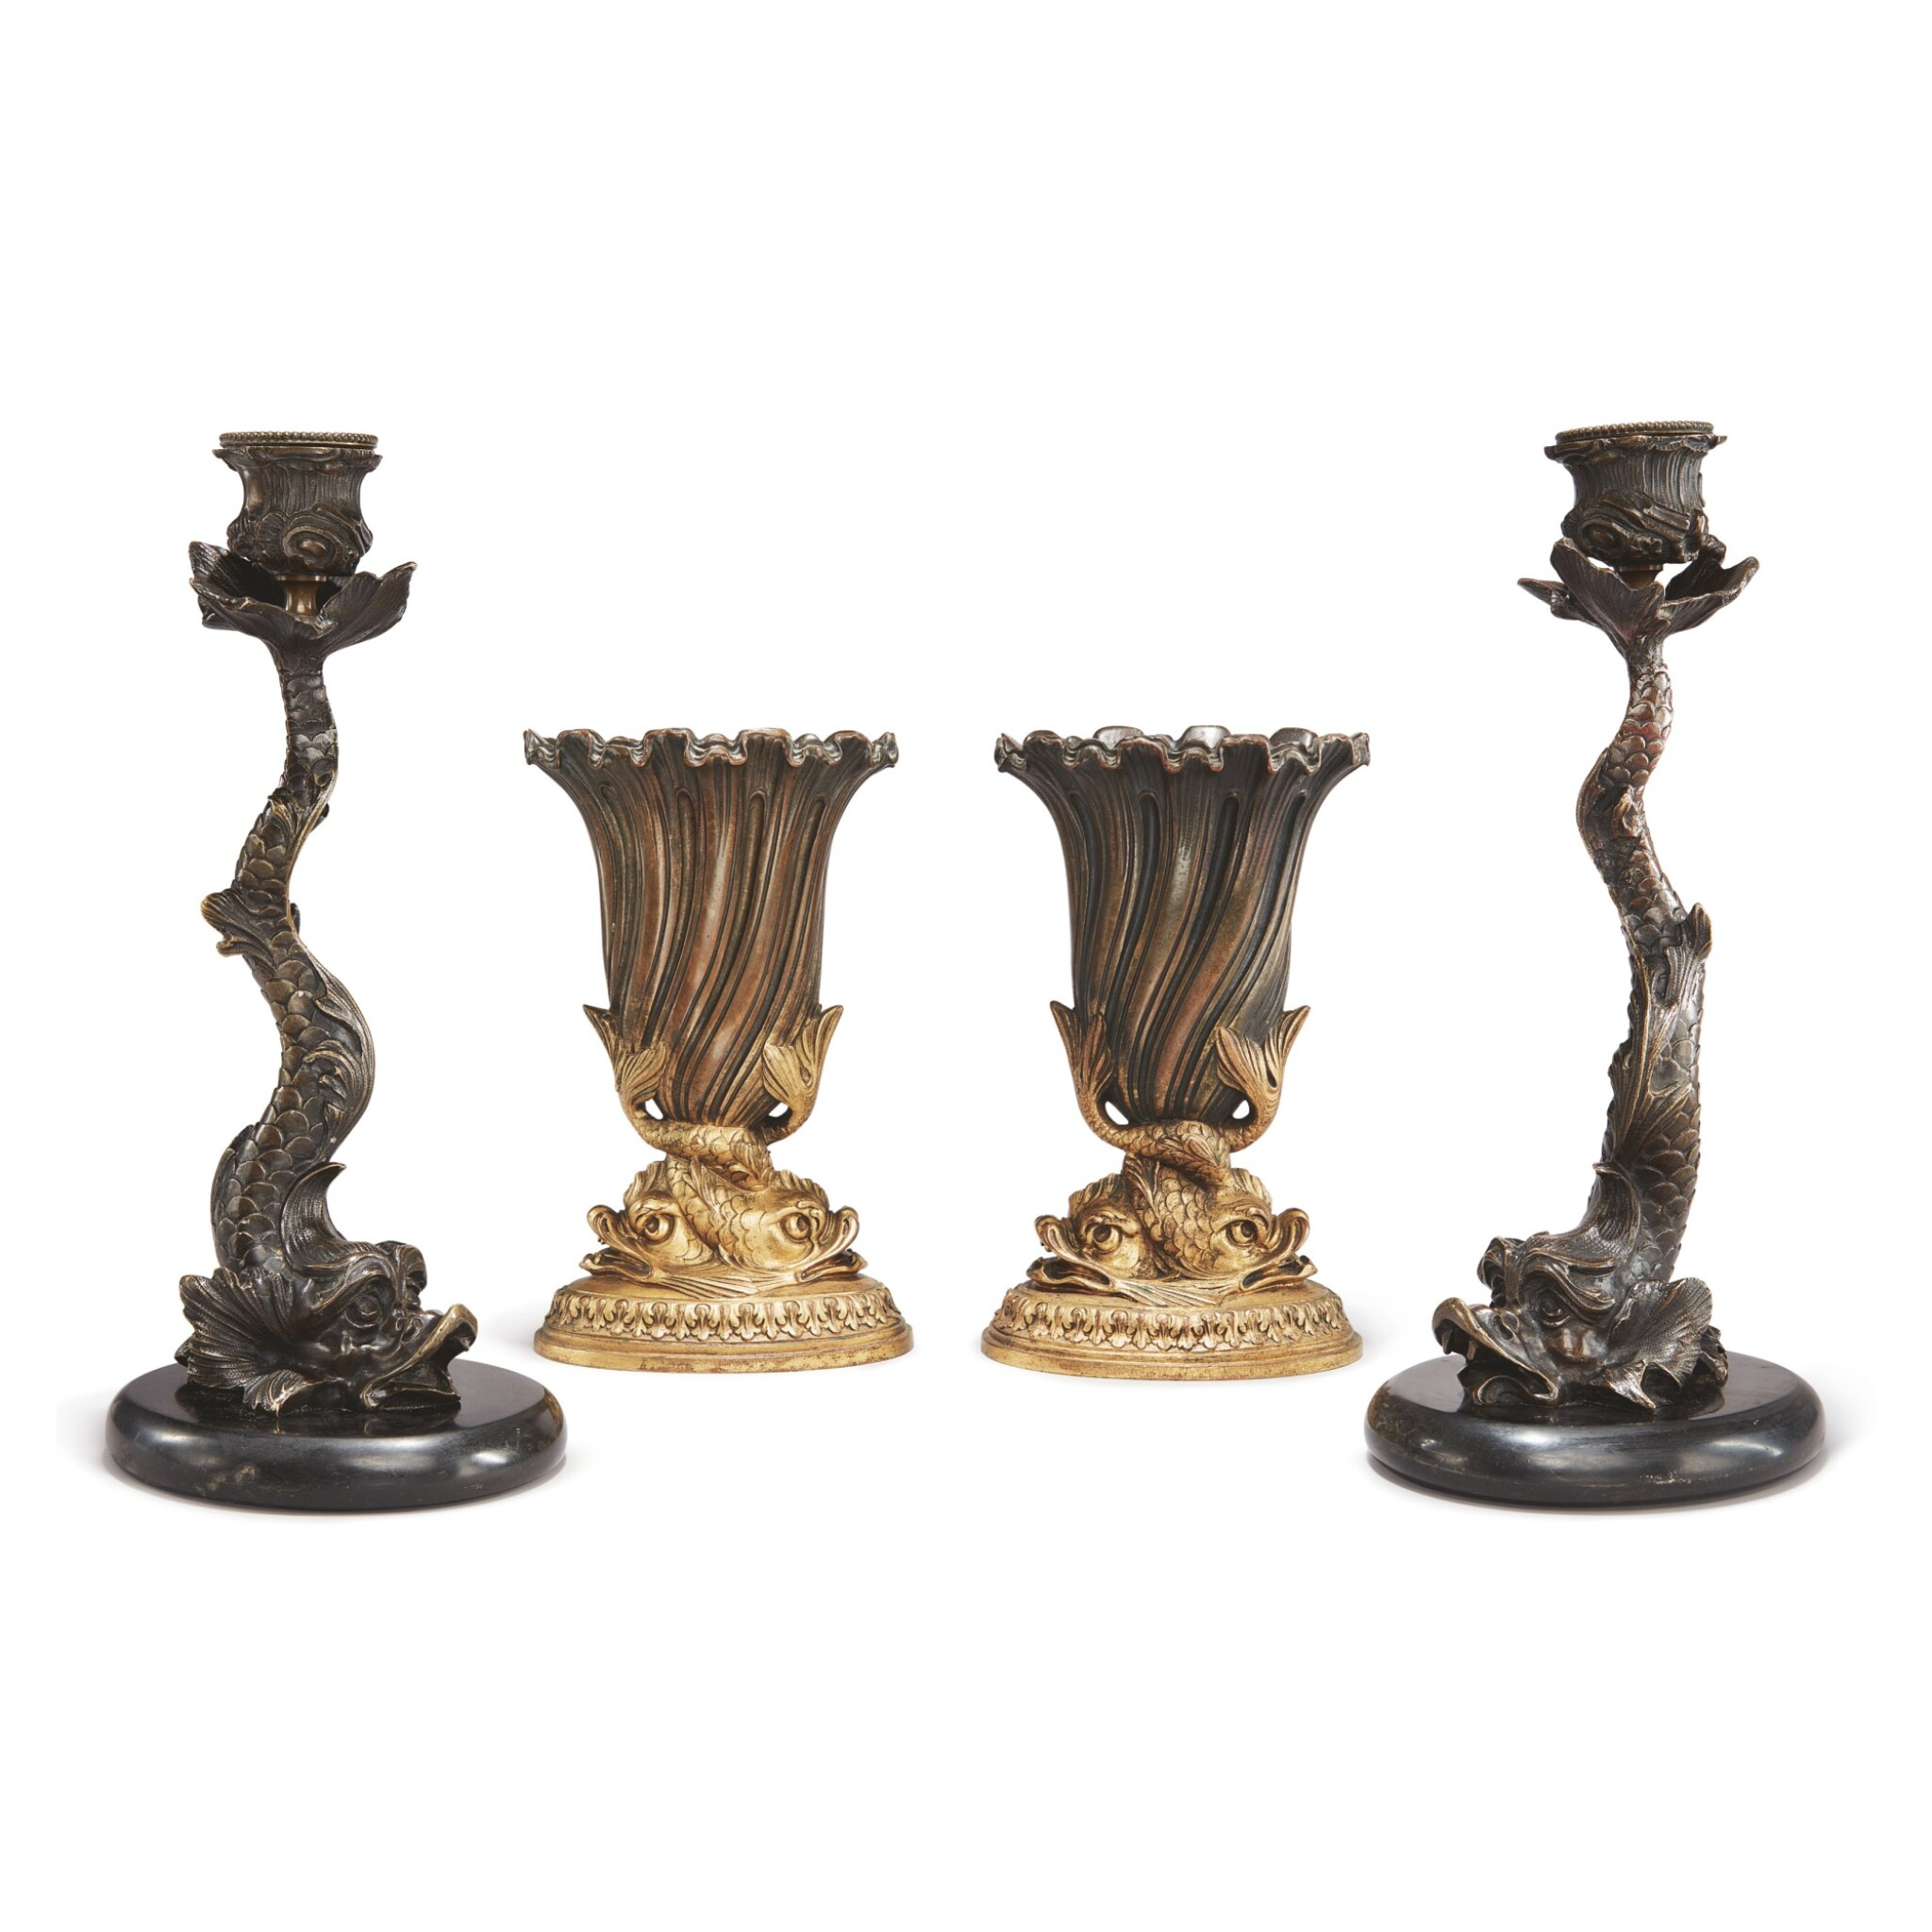 View full screen - View 1 of Lot 91. A PAIR OF REGENCY STYLE CAST METAL DOLPHIN CANDLESTICKS ON MARBLE BASES, ALONG WITH A PAIR OF REGENCY STYLE GILT AND PATINATED BRONZE DOLPHIN VASES.